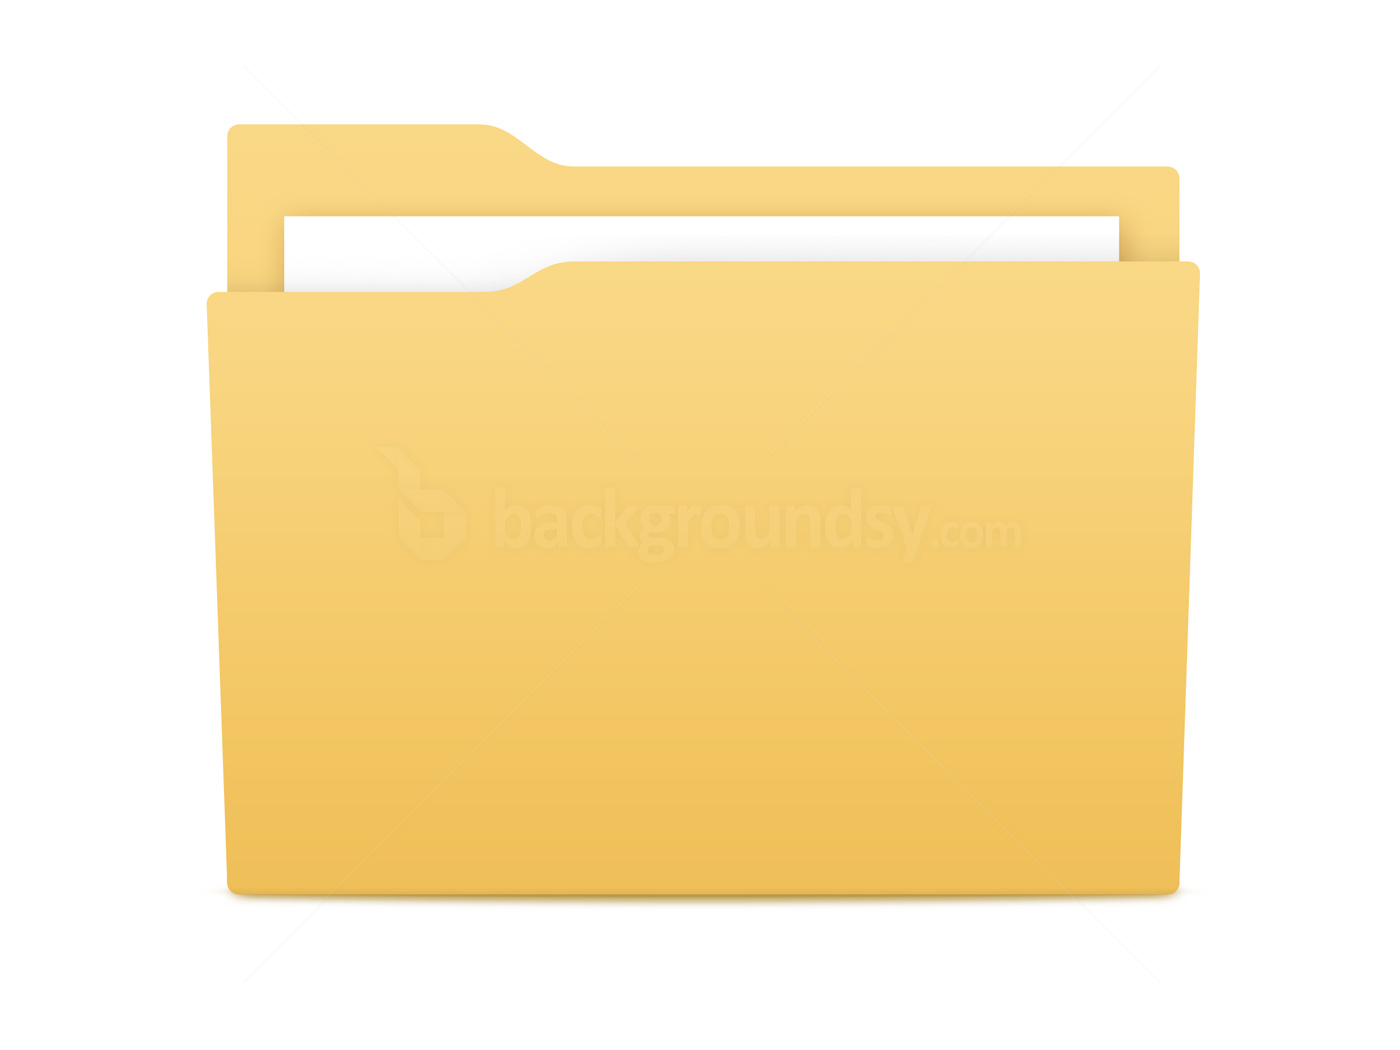 16 Business Folder Icon Images